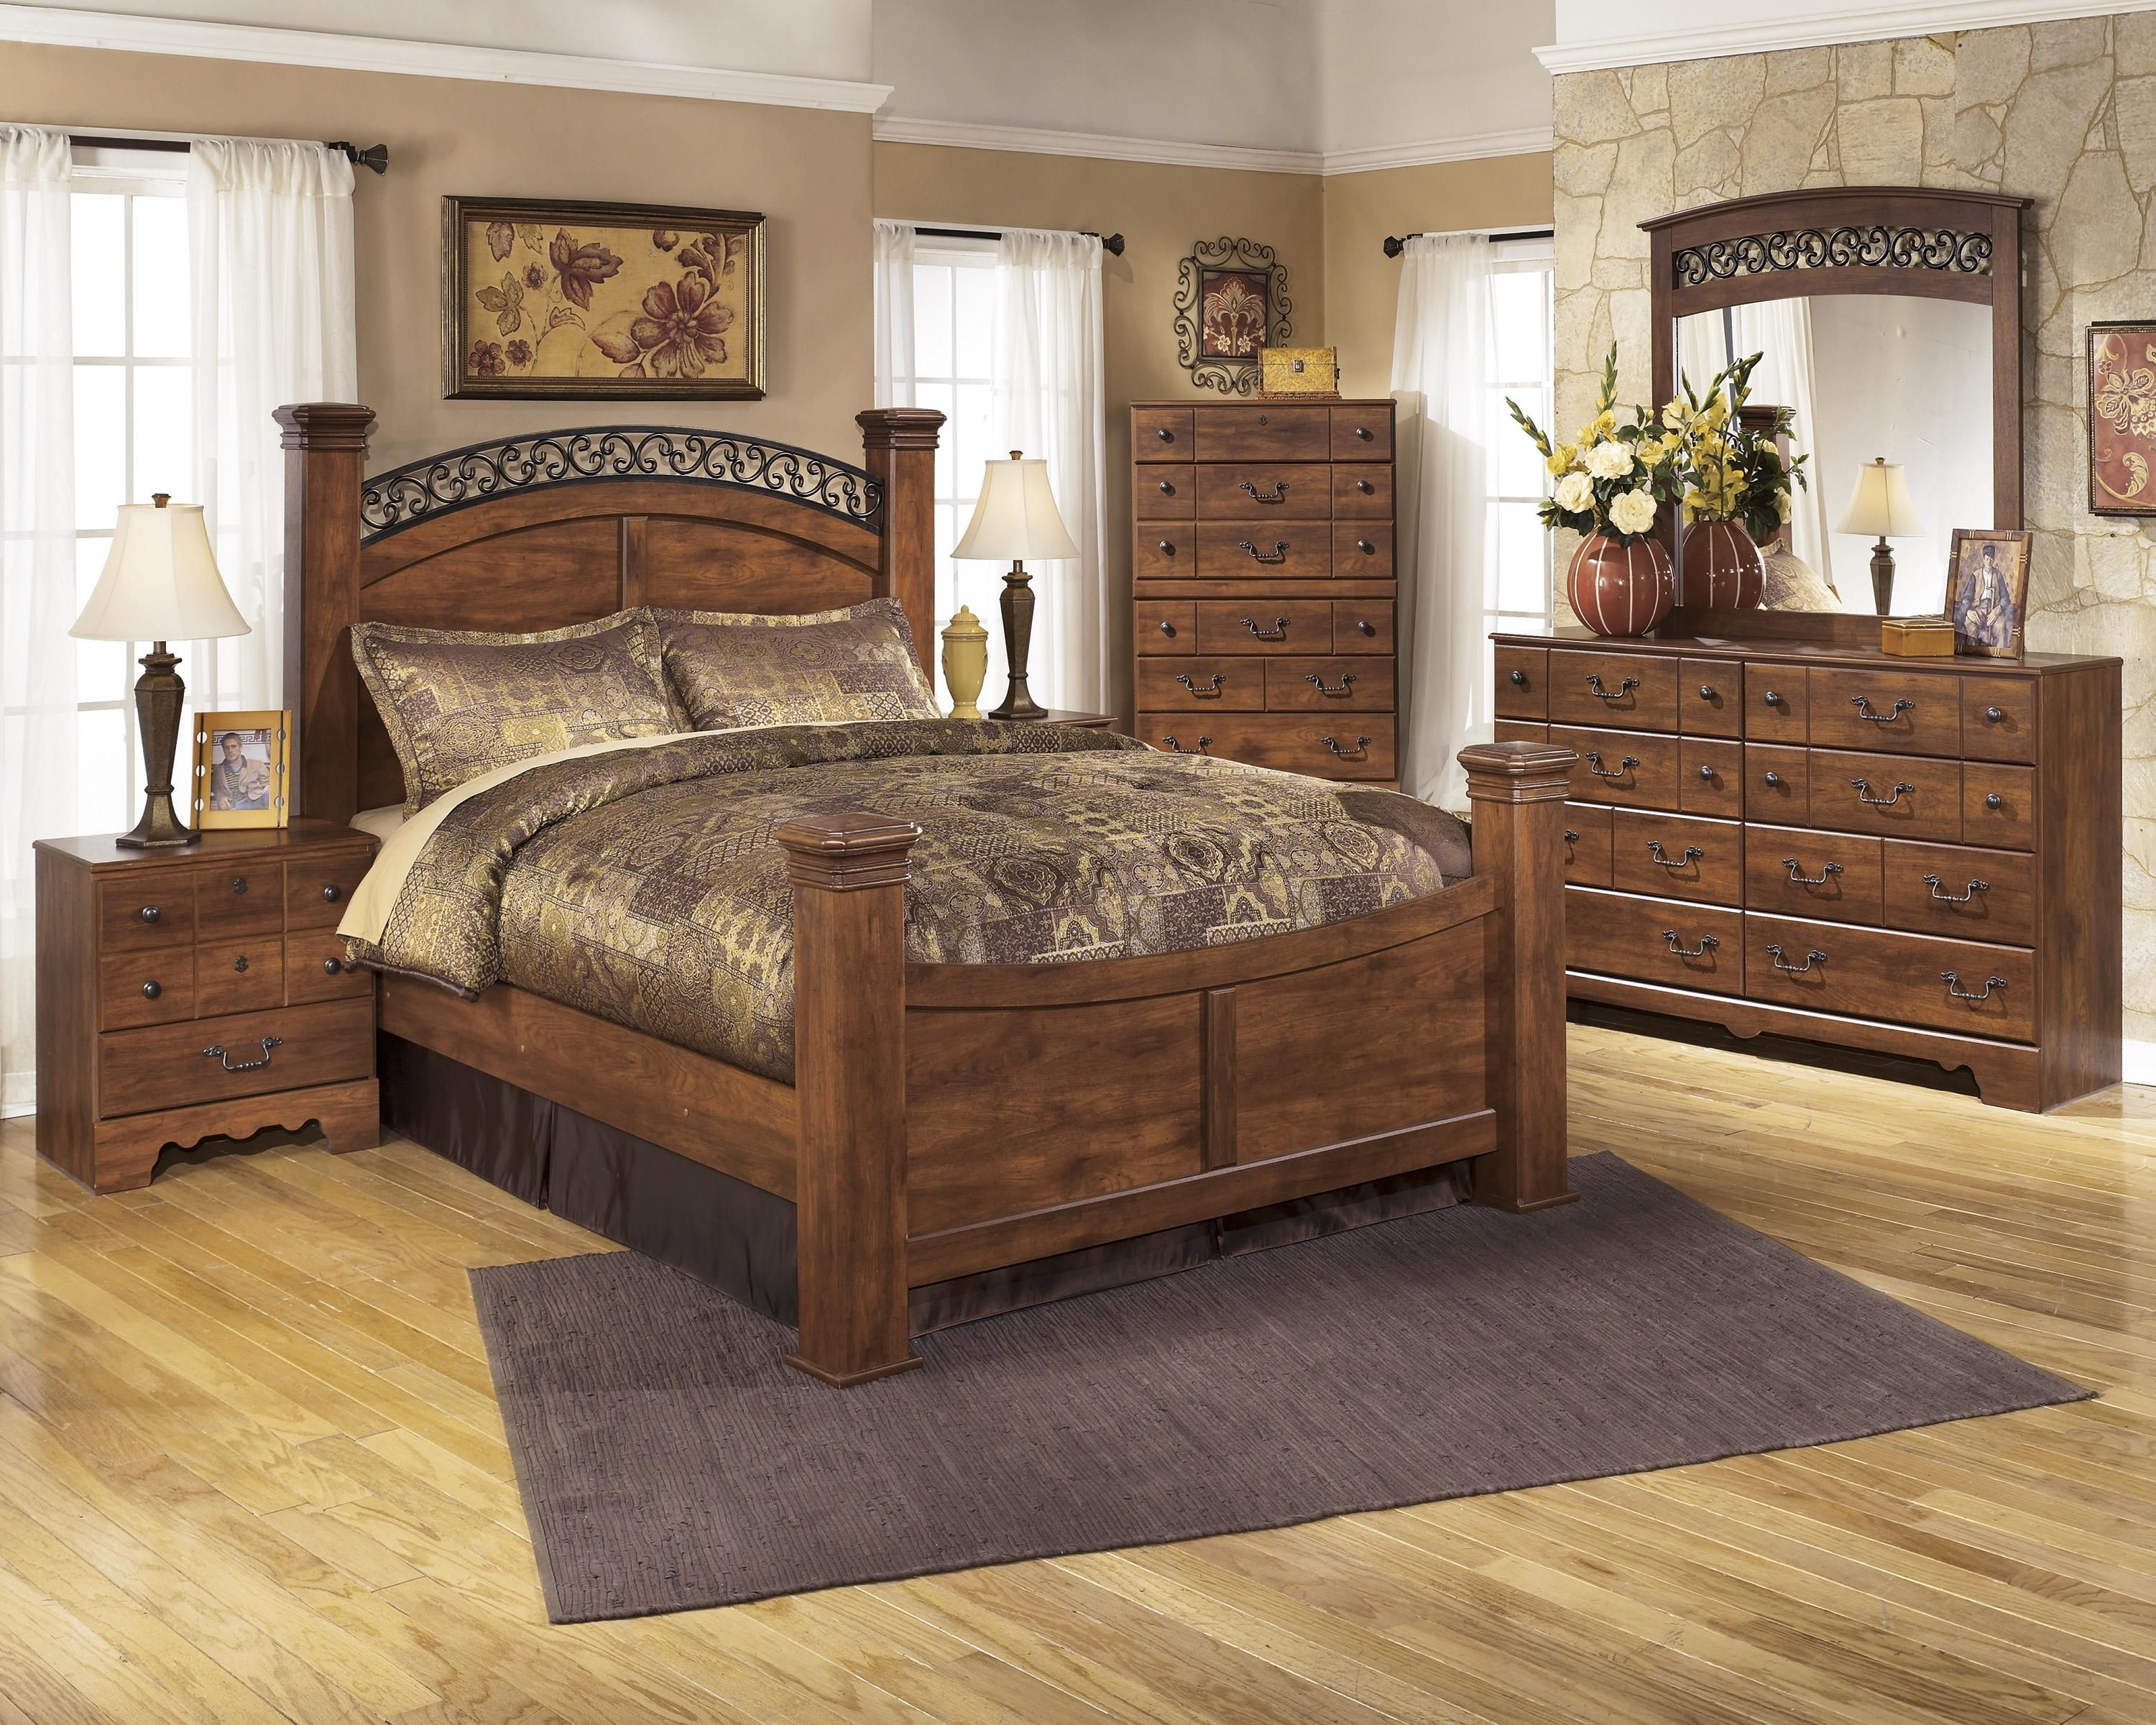 Timberline Queen Bedroom Group by Signature Design by